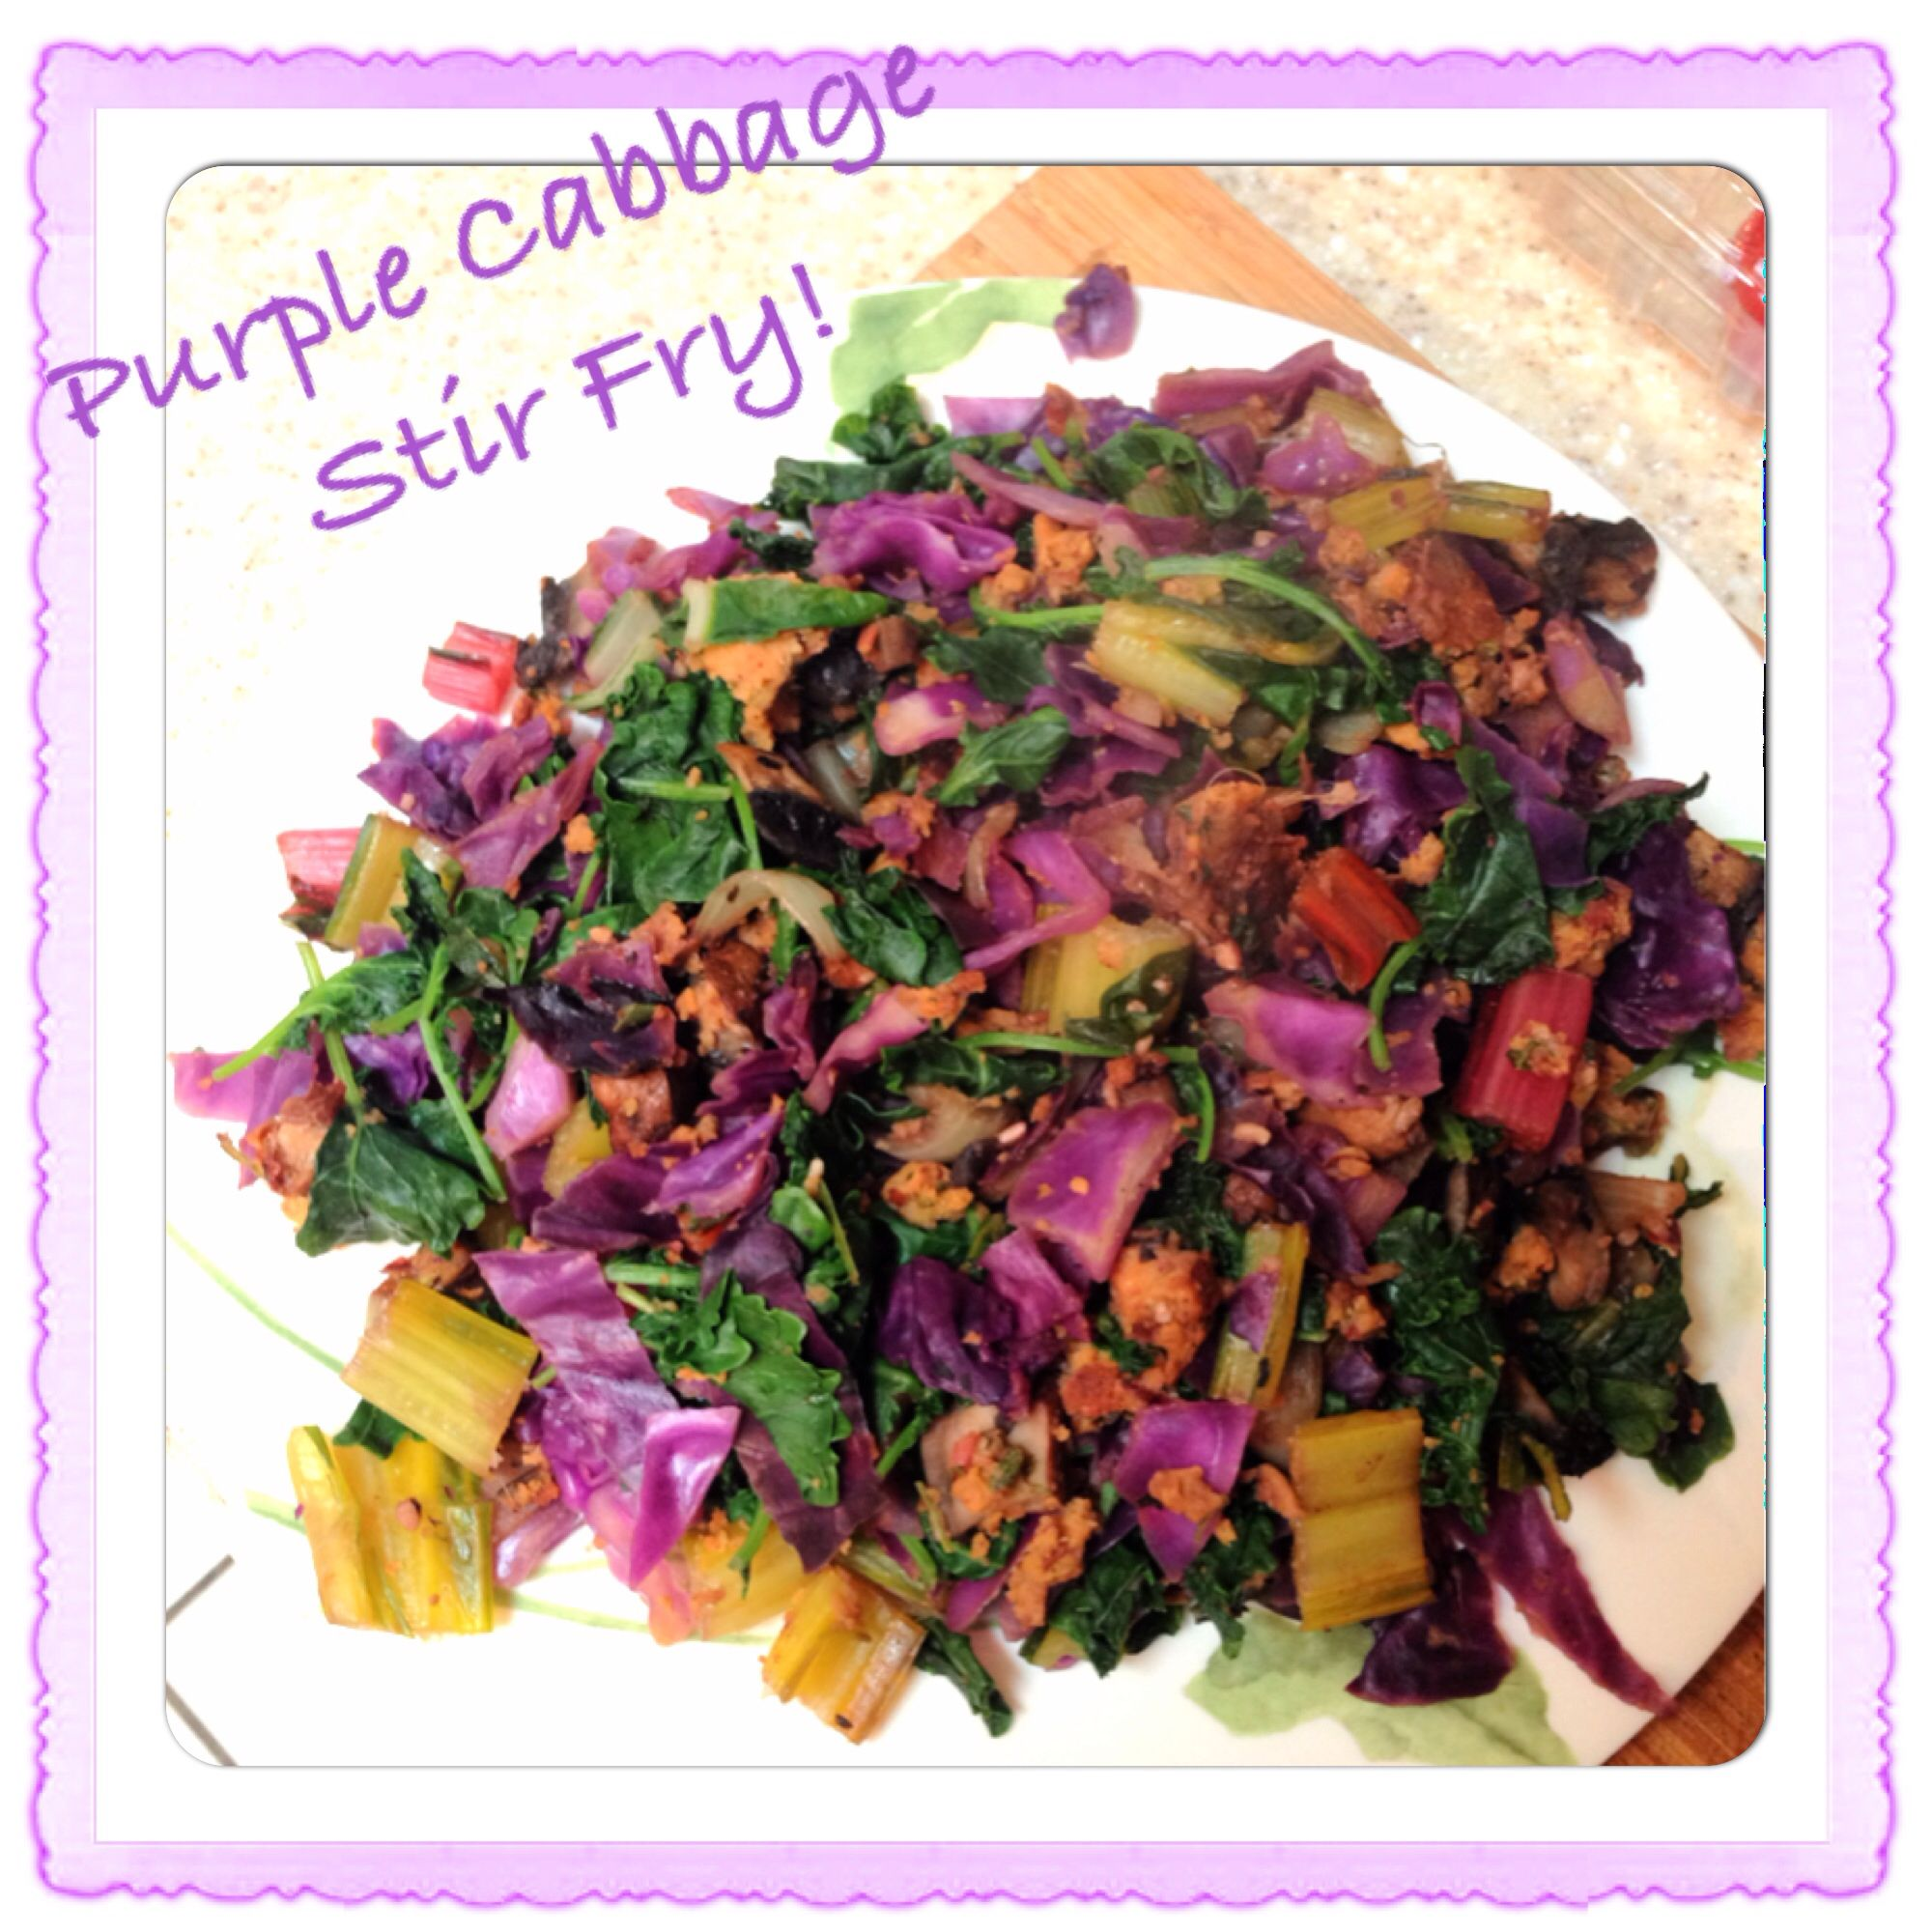 Purple Cabbage Stir Fry by Katiiez: Ingredients~1/4 head purple cabbage diced. 1/4 cup onion diced. 1 tablespoon garlic minced. 1/4 teaspoon fresh ginger minced. 3 leaves and stems rainbow chard chopped. 1 handful baby kale. 1 cooked bean veggie burger. Directions: For 5 mins, on medium heat sauté first 4 ingredients. Add in last 3 for 3 mins. Healthy, high in antioxidants and vegan! Get funky and creative by adding in 2 tablespoons hemp seed, 2 tablespoons slivered almonds, or roasted…